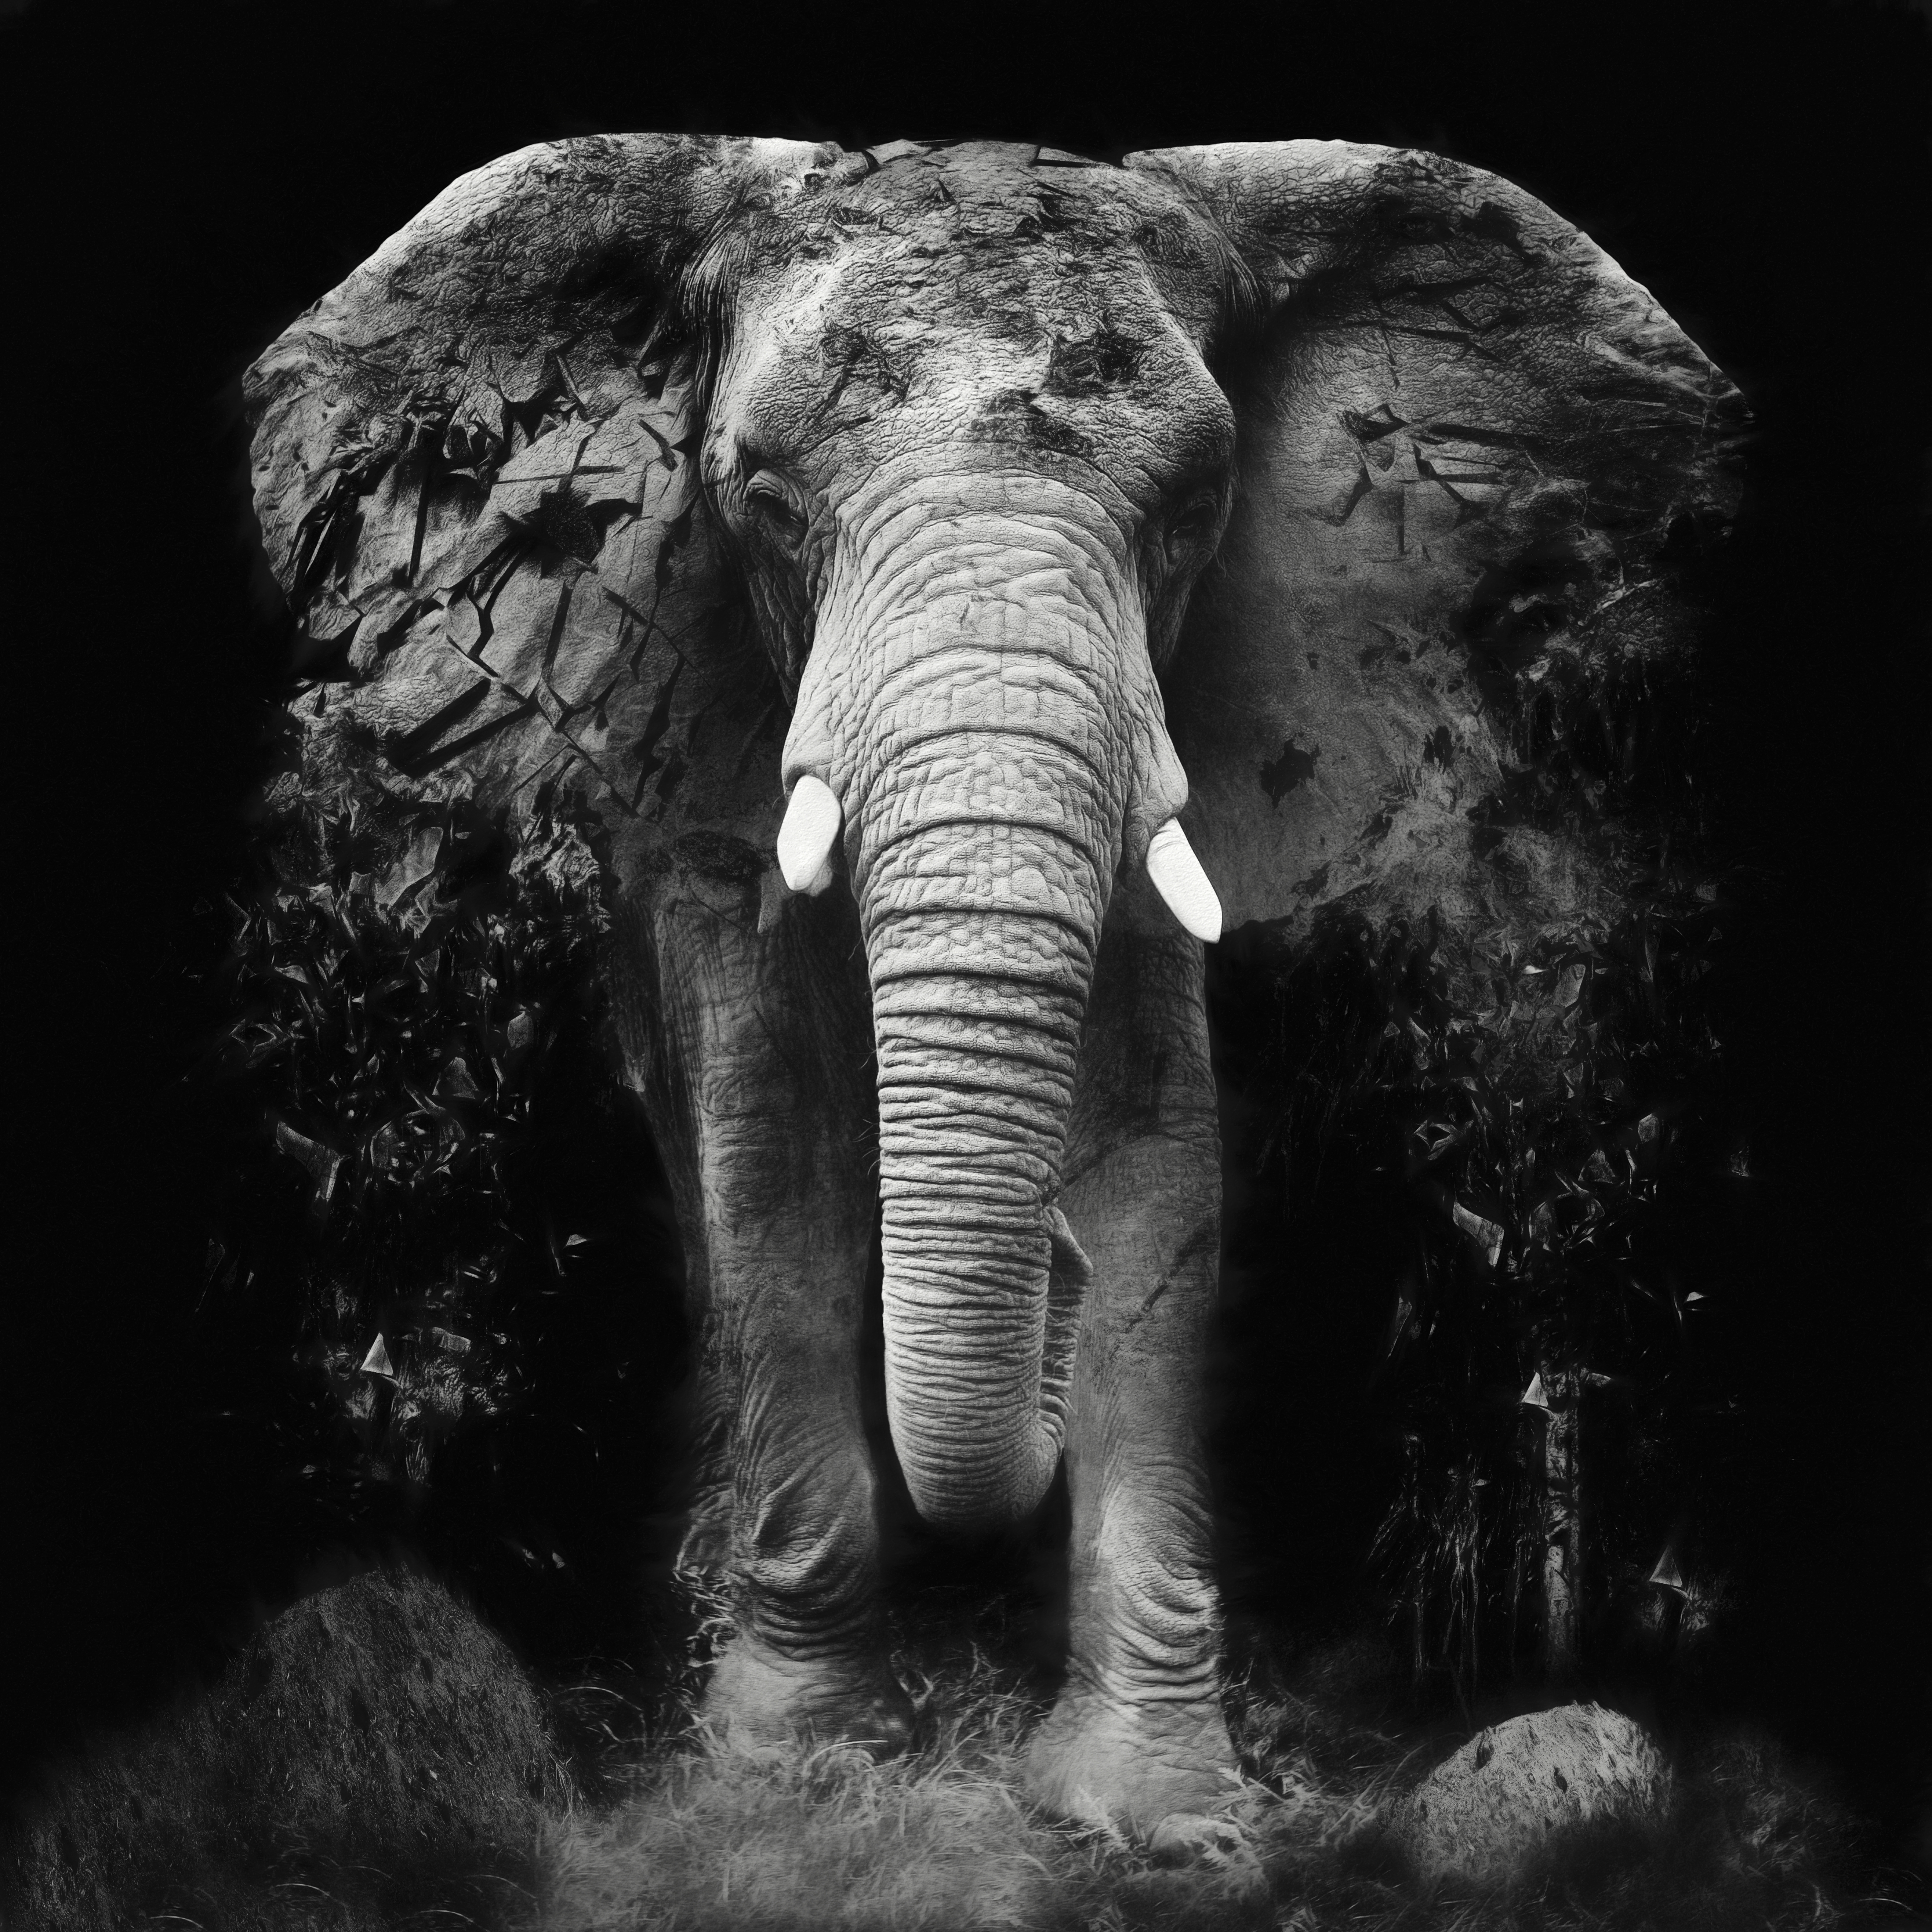 Erik Brede: 'The Disappearance 7 of 10', 2014 Black and White Photograph, Conceptual. Artist Description: Only 4 prints left  The Disappearance of the Elephant - Unique piece of photoart that is both amazingly decorative but also has a deep political message aEUR